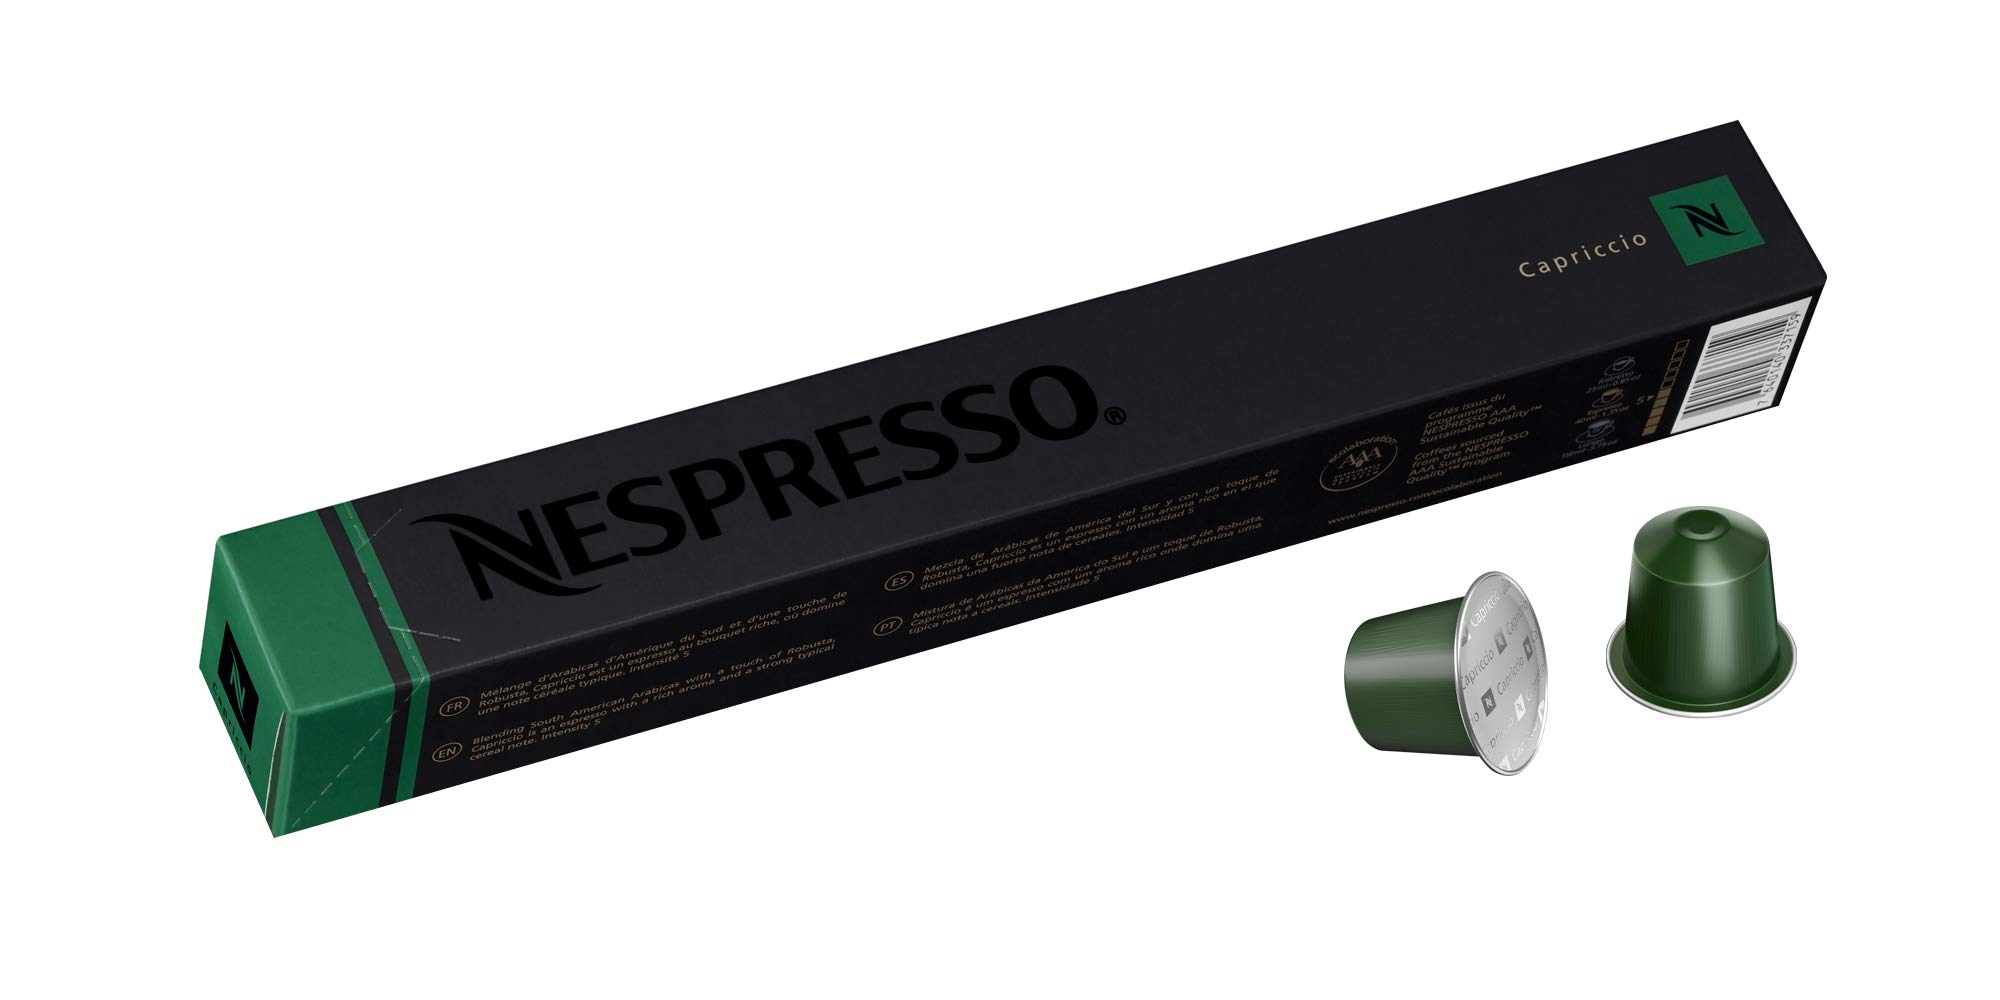 Nespresso Variety Pack Capsules, 50 Count by Nespresso (Image #2)